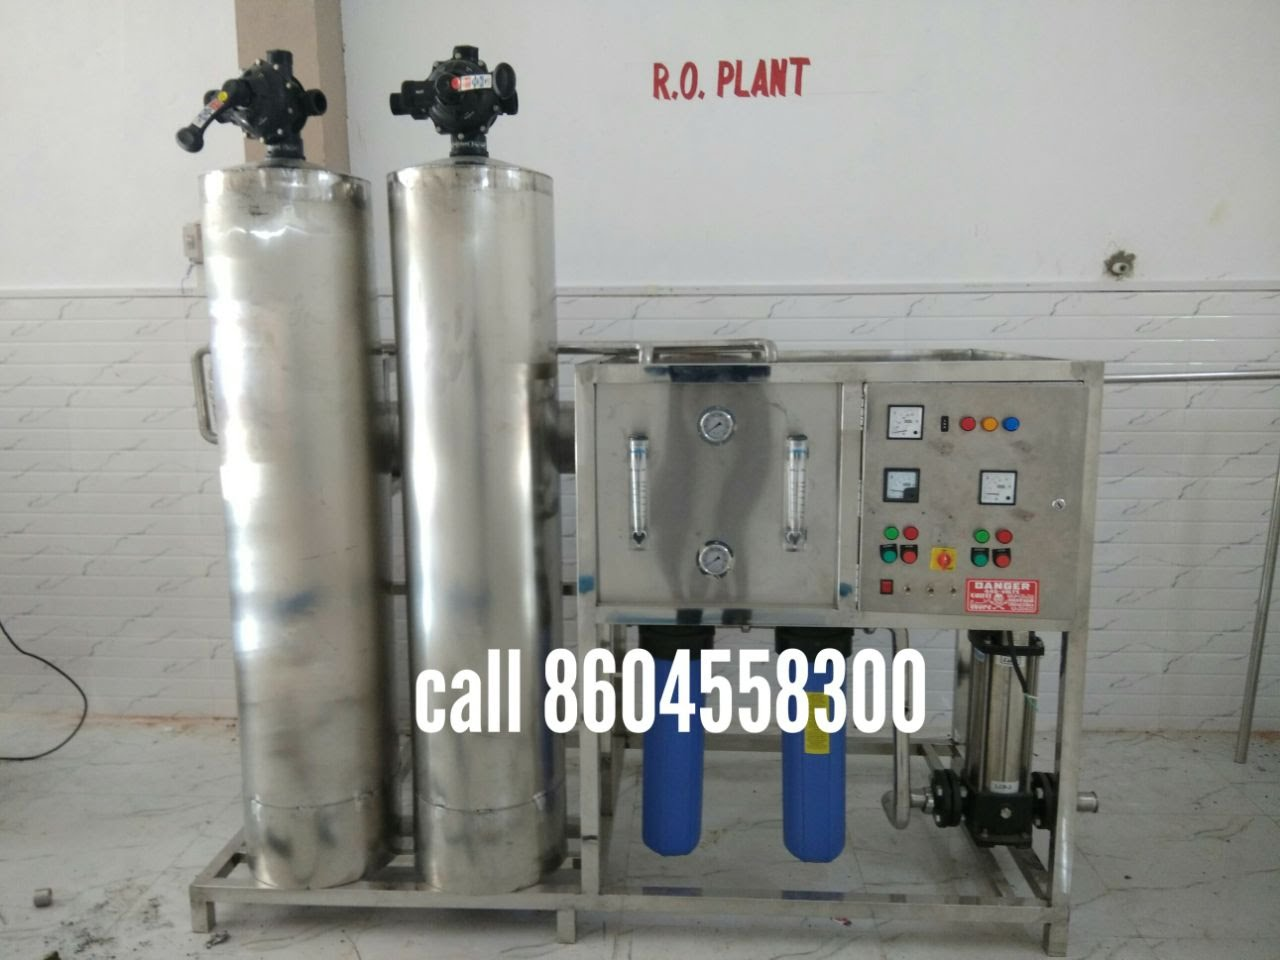 Ro Water Plant Manufacturers in India